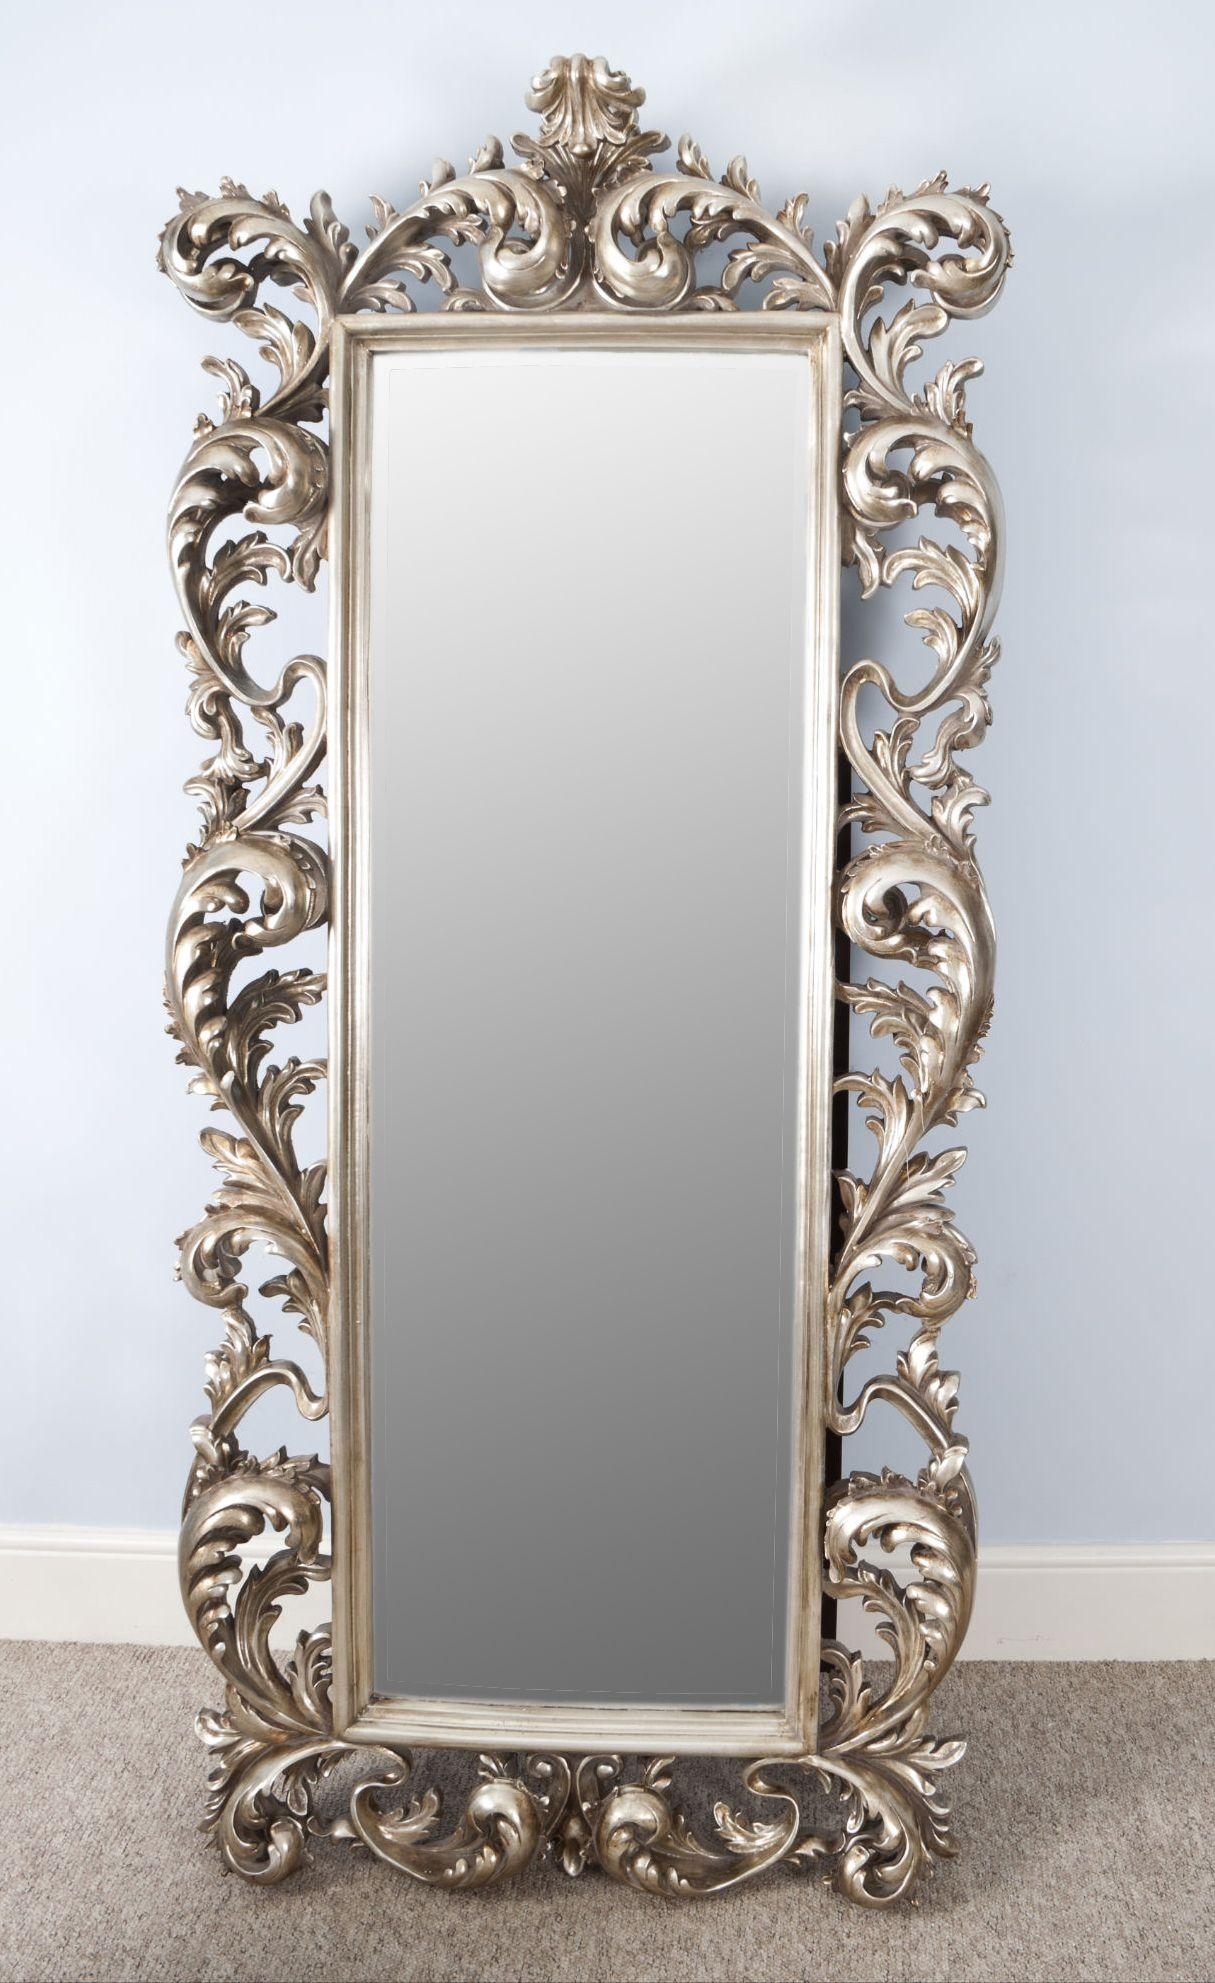 Old Fashioned Wall Mirrors Antique Mirror Wall Covering Vintage Regarding Reproduction Antique Mirrors (Image 20 of 20)